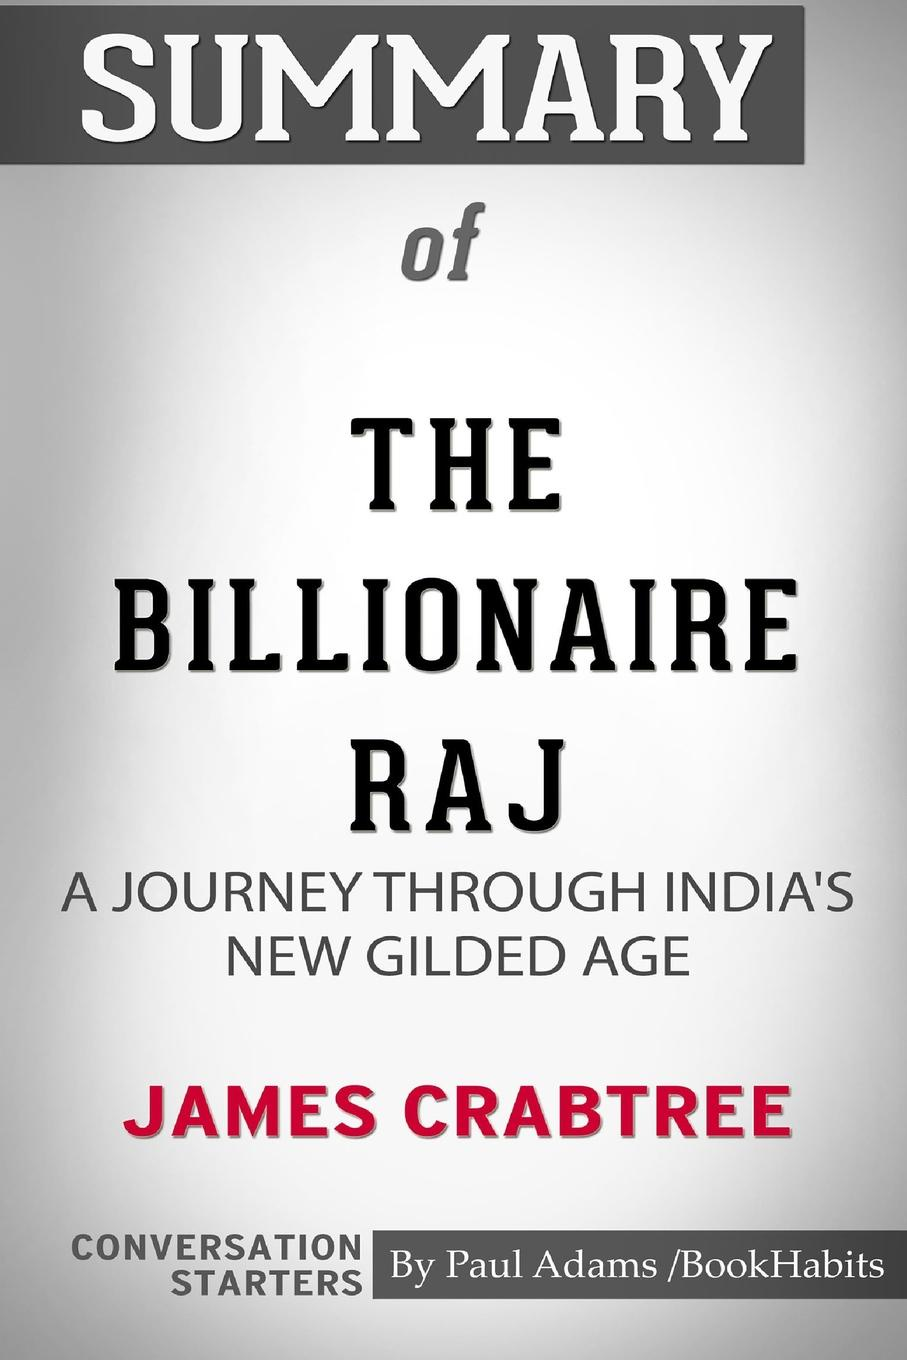 Paul Adams / BookHabits Summary of The Billionaire Raj. A Journey Through India's New Gilded Age by James Crabtree: Conversation Starters 15 crabtree